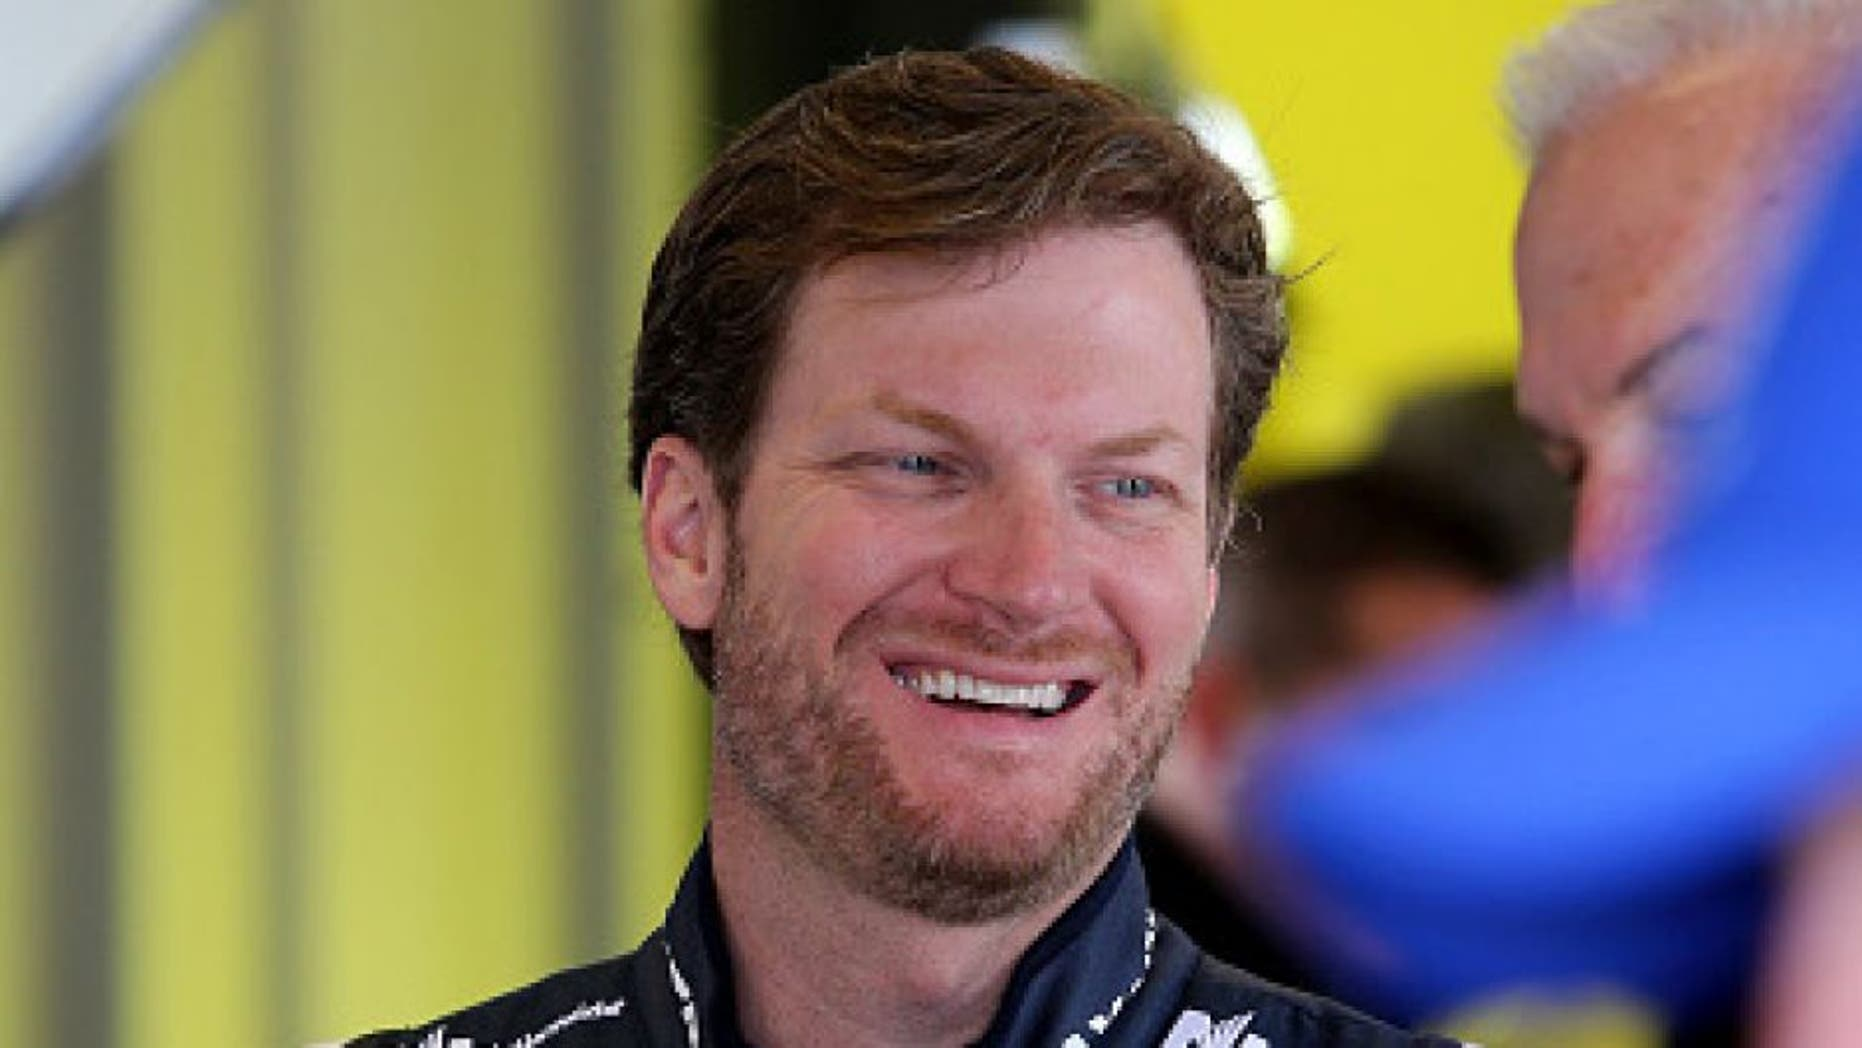 SPARTA, KY - JULY 07: Dale Earnhardt Jr., driver of the #88 Nationwide Chevrolet, stands in the garage area during practice for the NASCAR Sprint Cup Series Quaker State 400 at Kentucky Speedway on July 7, 2016 in Sparta, Kentucky. (Photo by Jerry Markland/Getty Images)